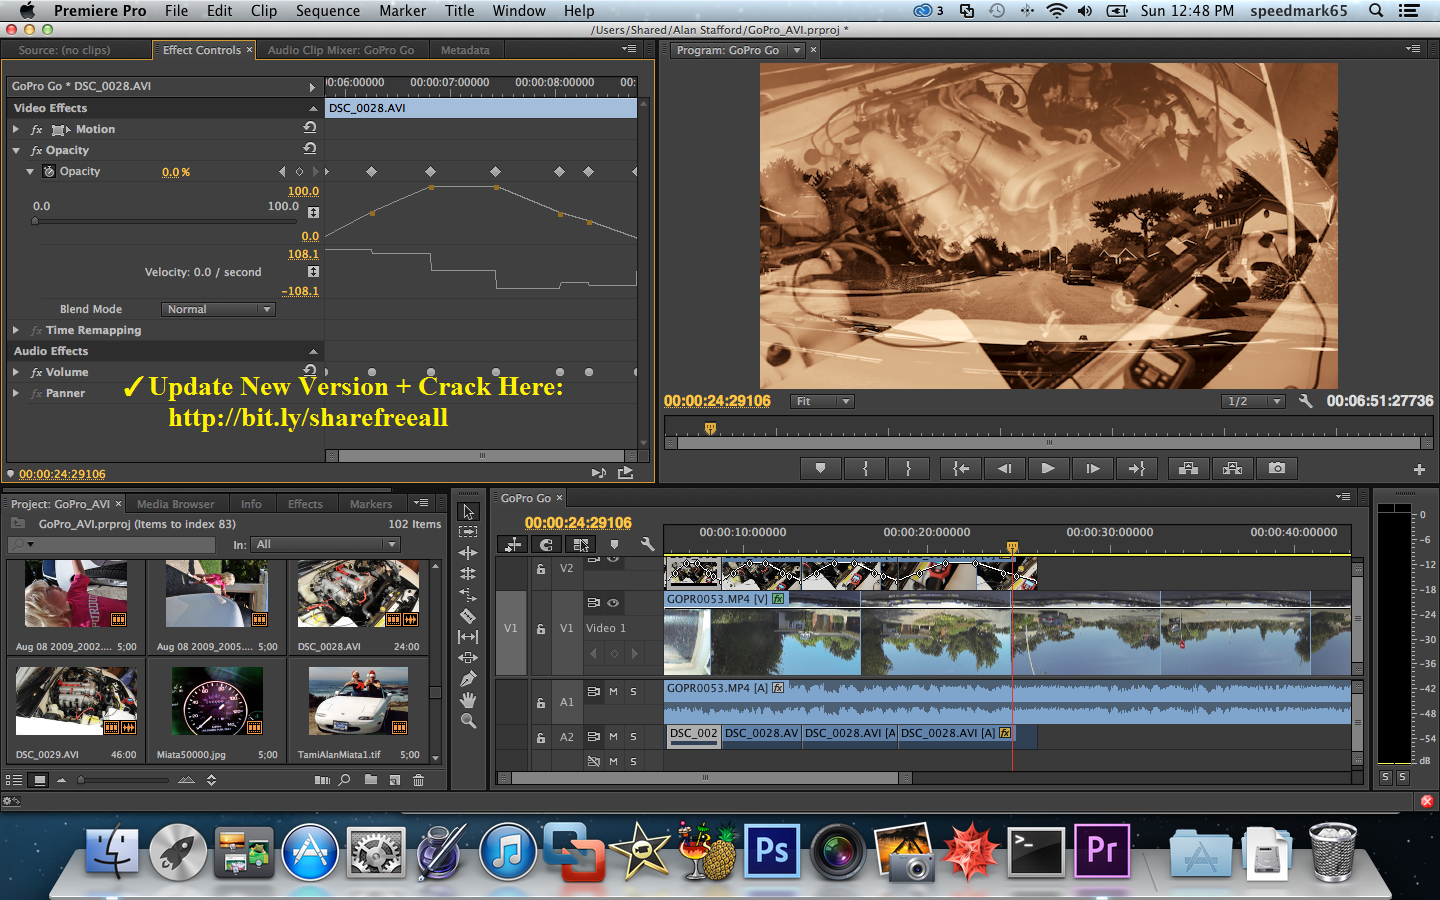 Adobe Premiere Pro CC 7.1.0 Build 141 Multilanguage [ChingLiu] Free Download